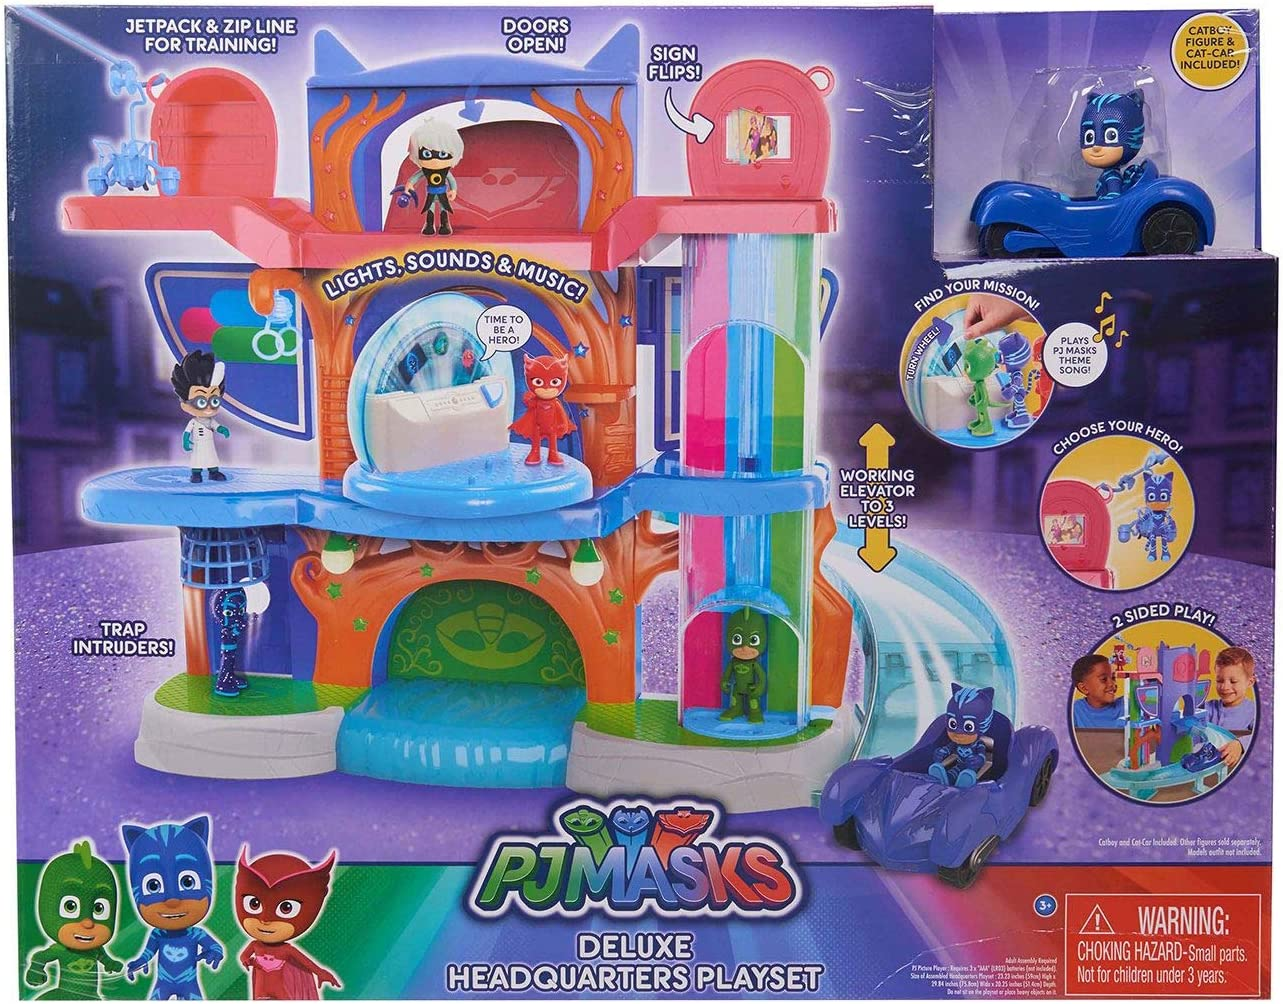 Store - 383 PJ Masks Fort Worth Mall Deluxe Tucson Mall 4 Pack of Headquarters A1 Playset.